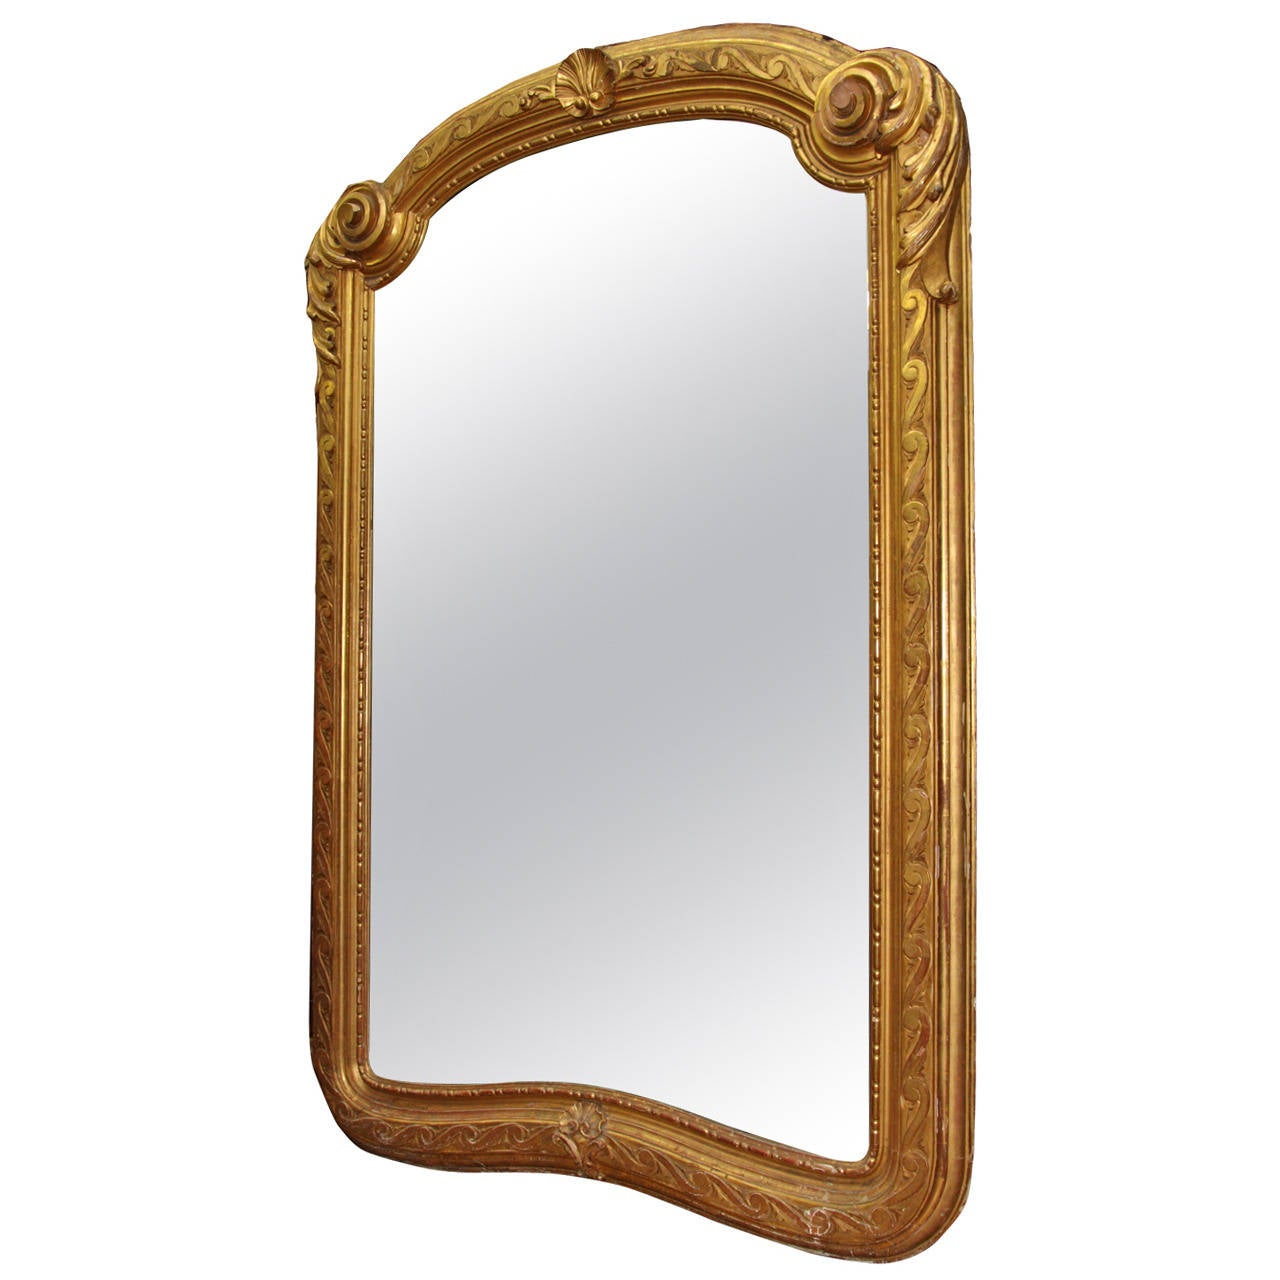 Large antique french carved giltwood mirror for sale at for Big mirrors for sale